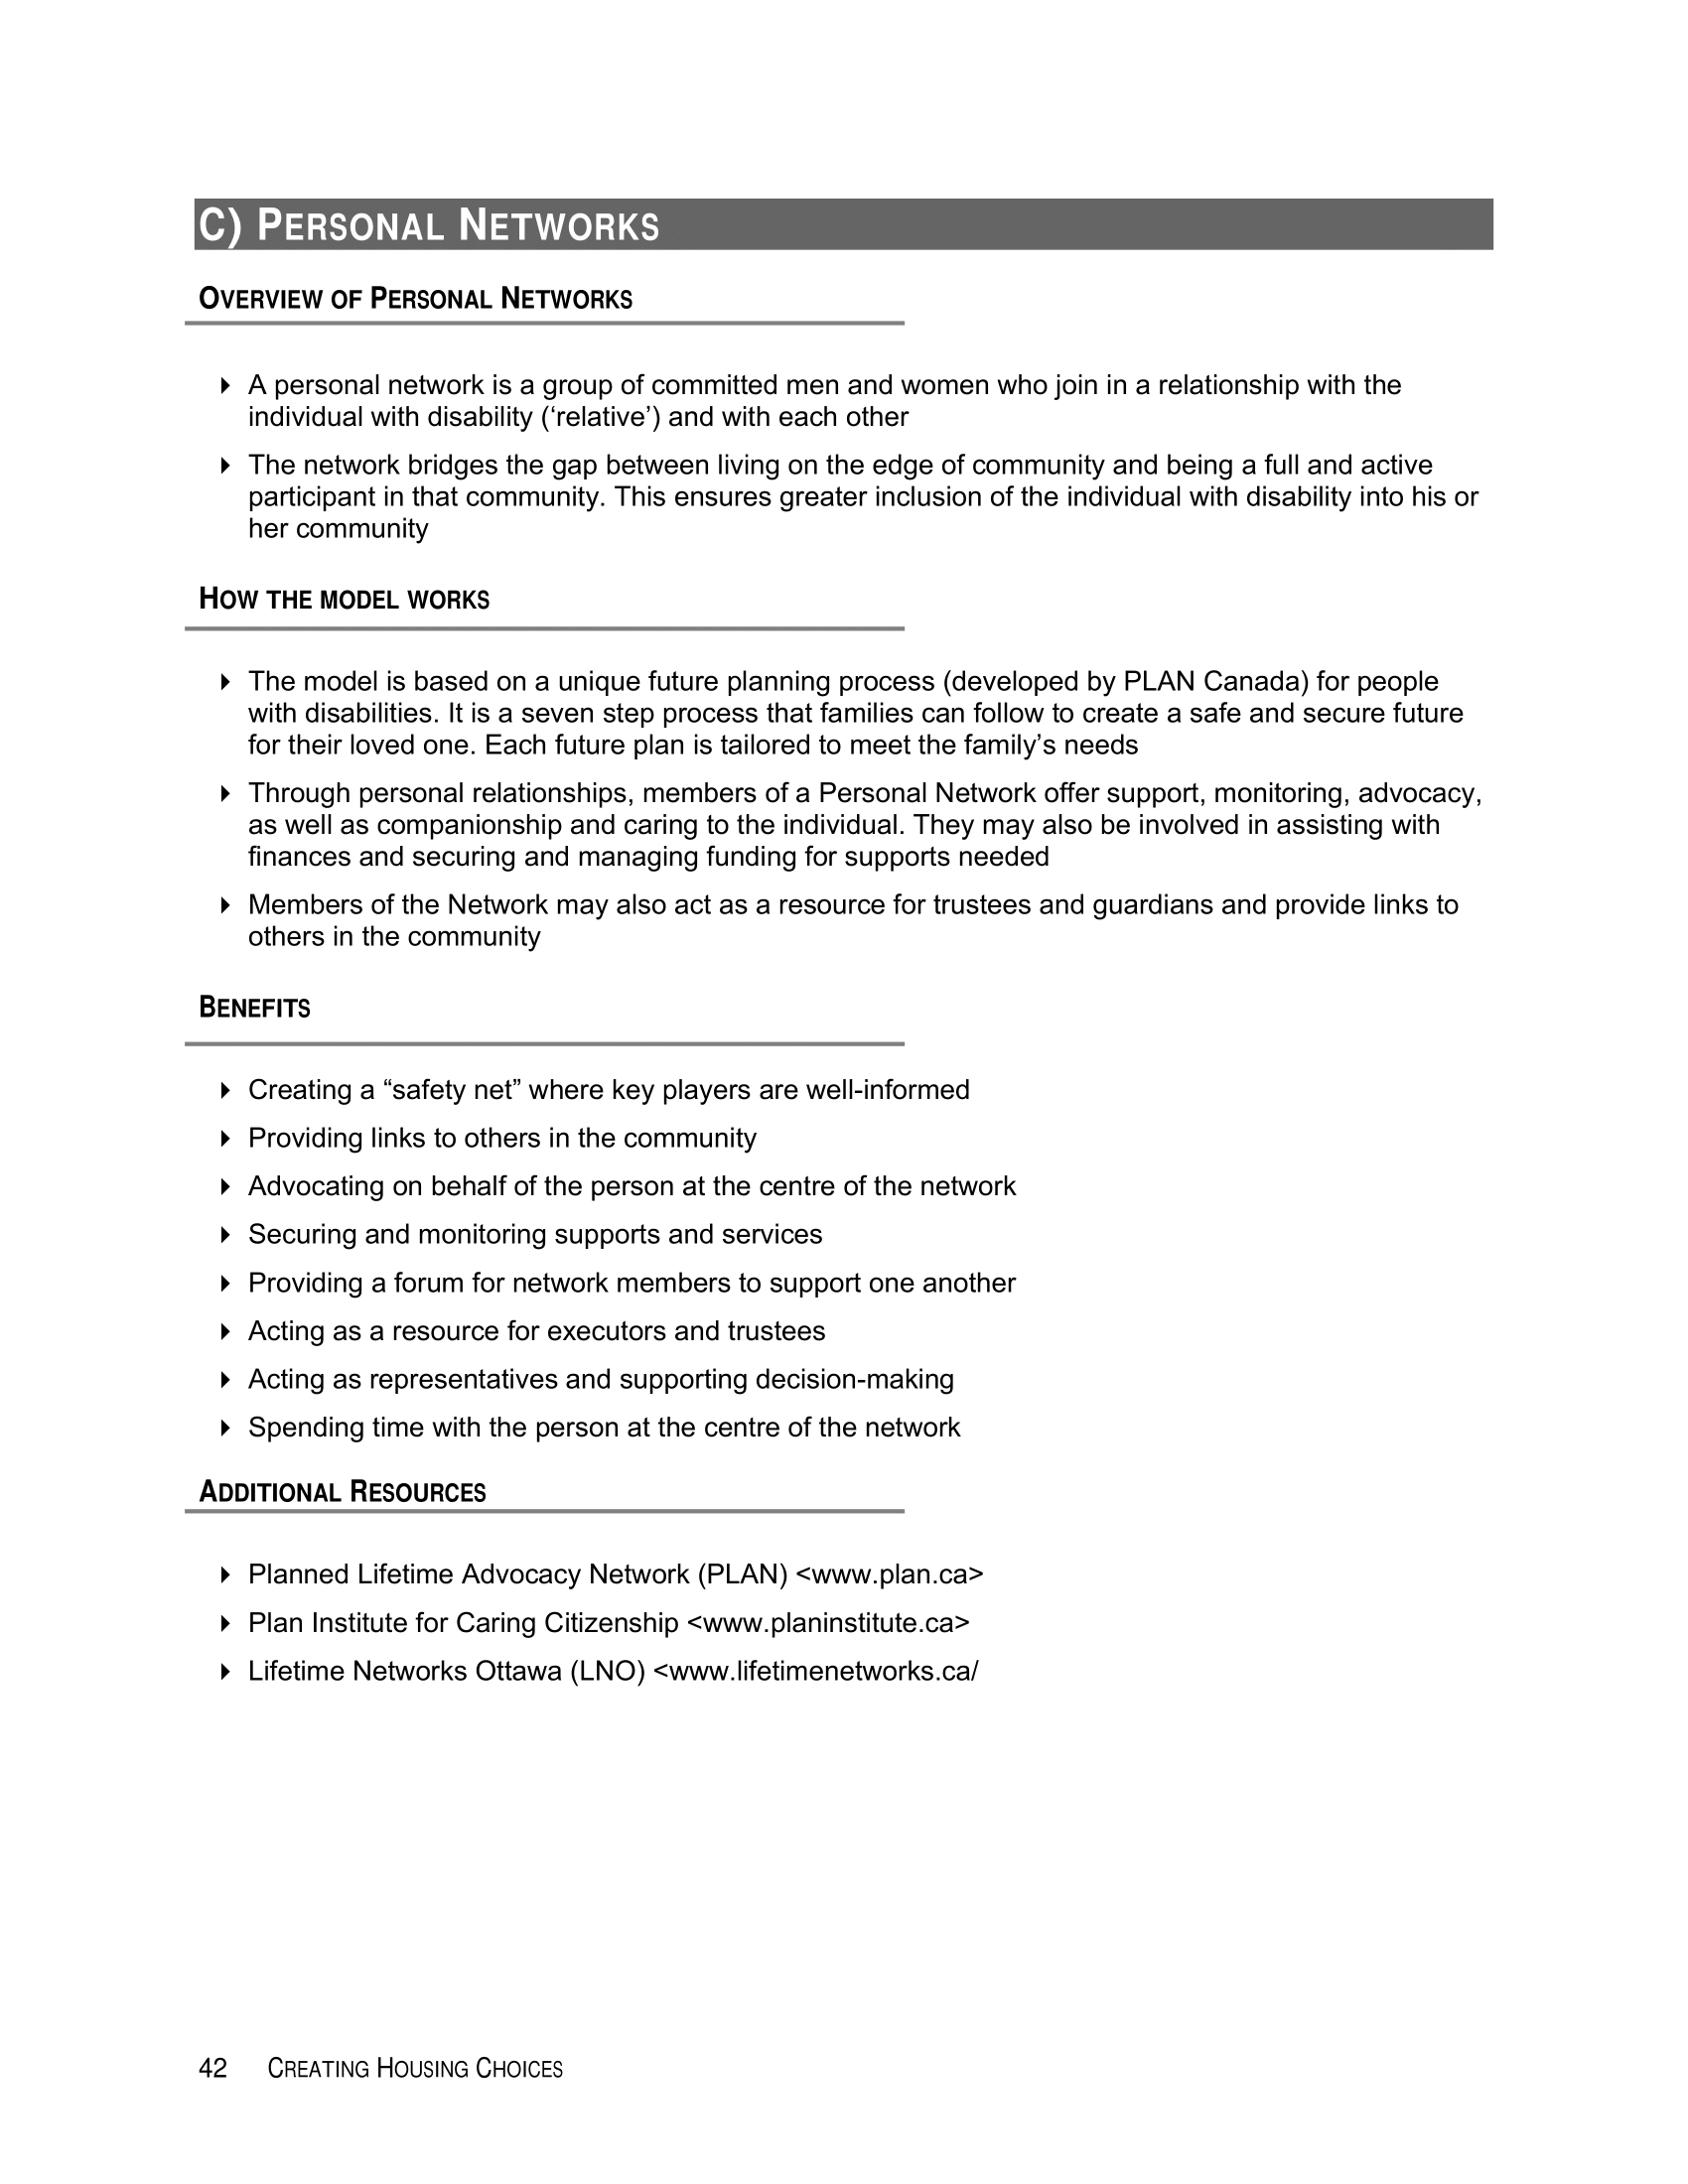 Creating Housing Choices - 2006-43.png